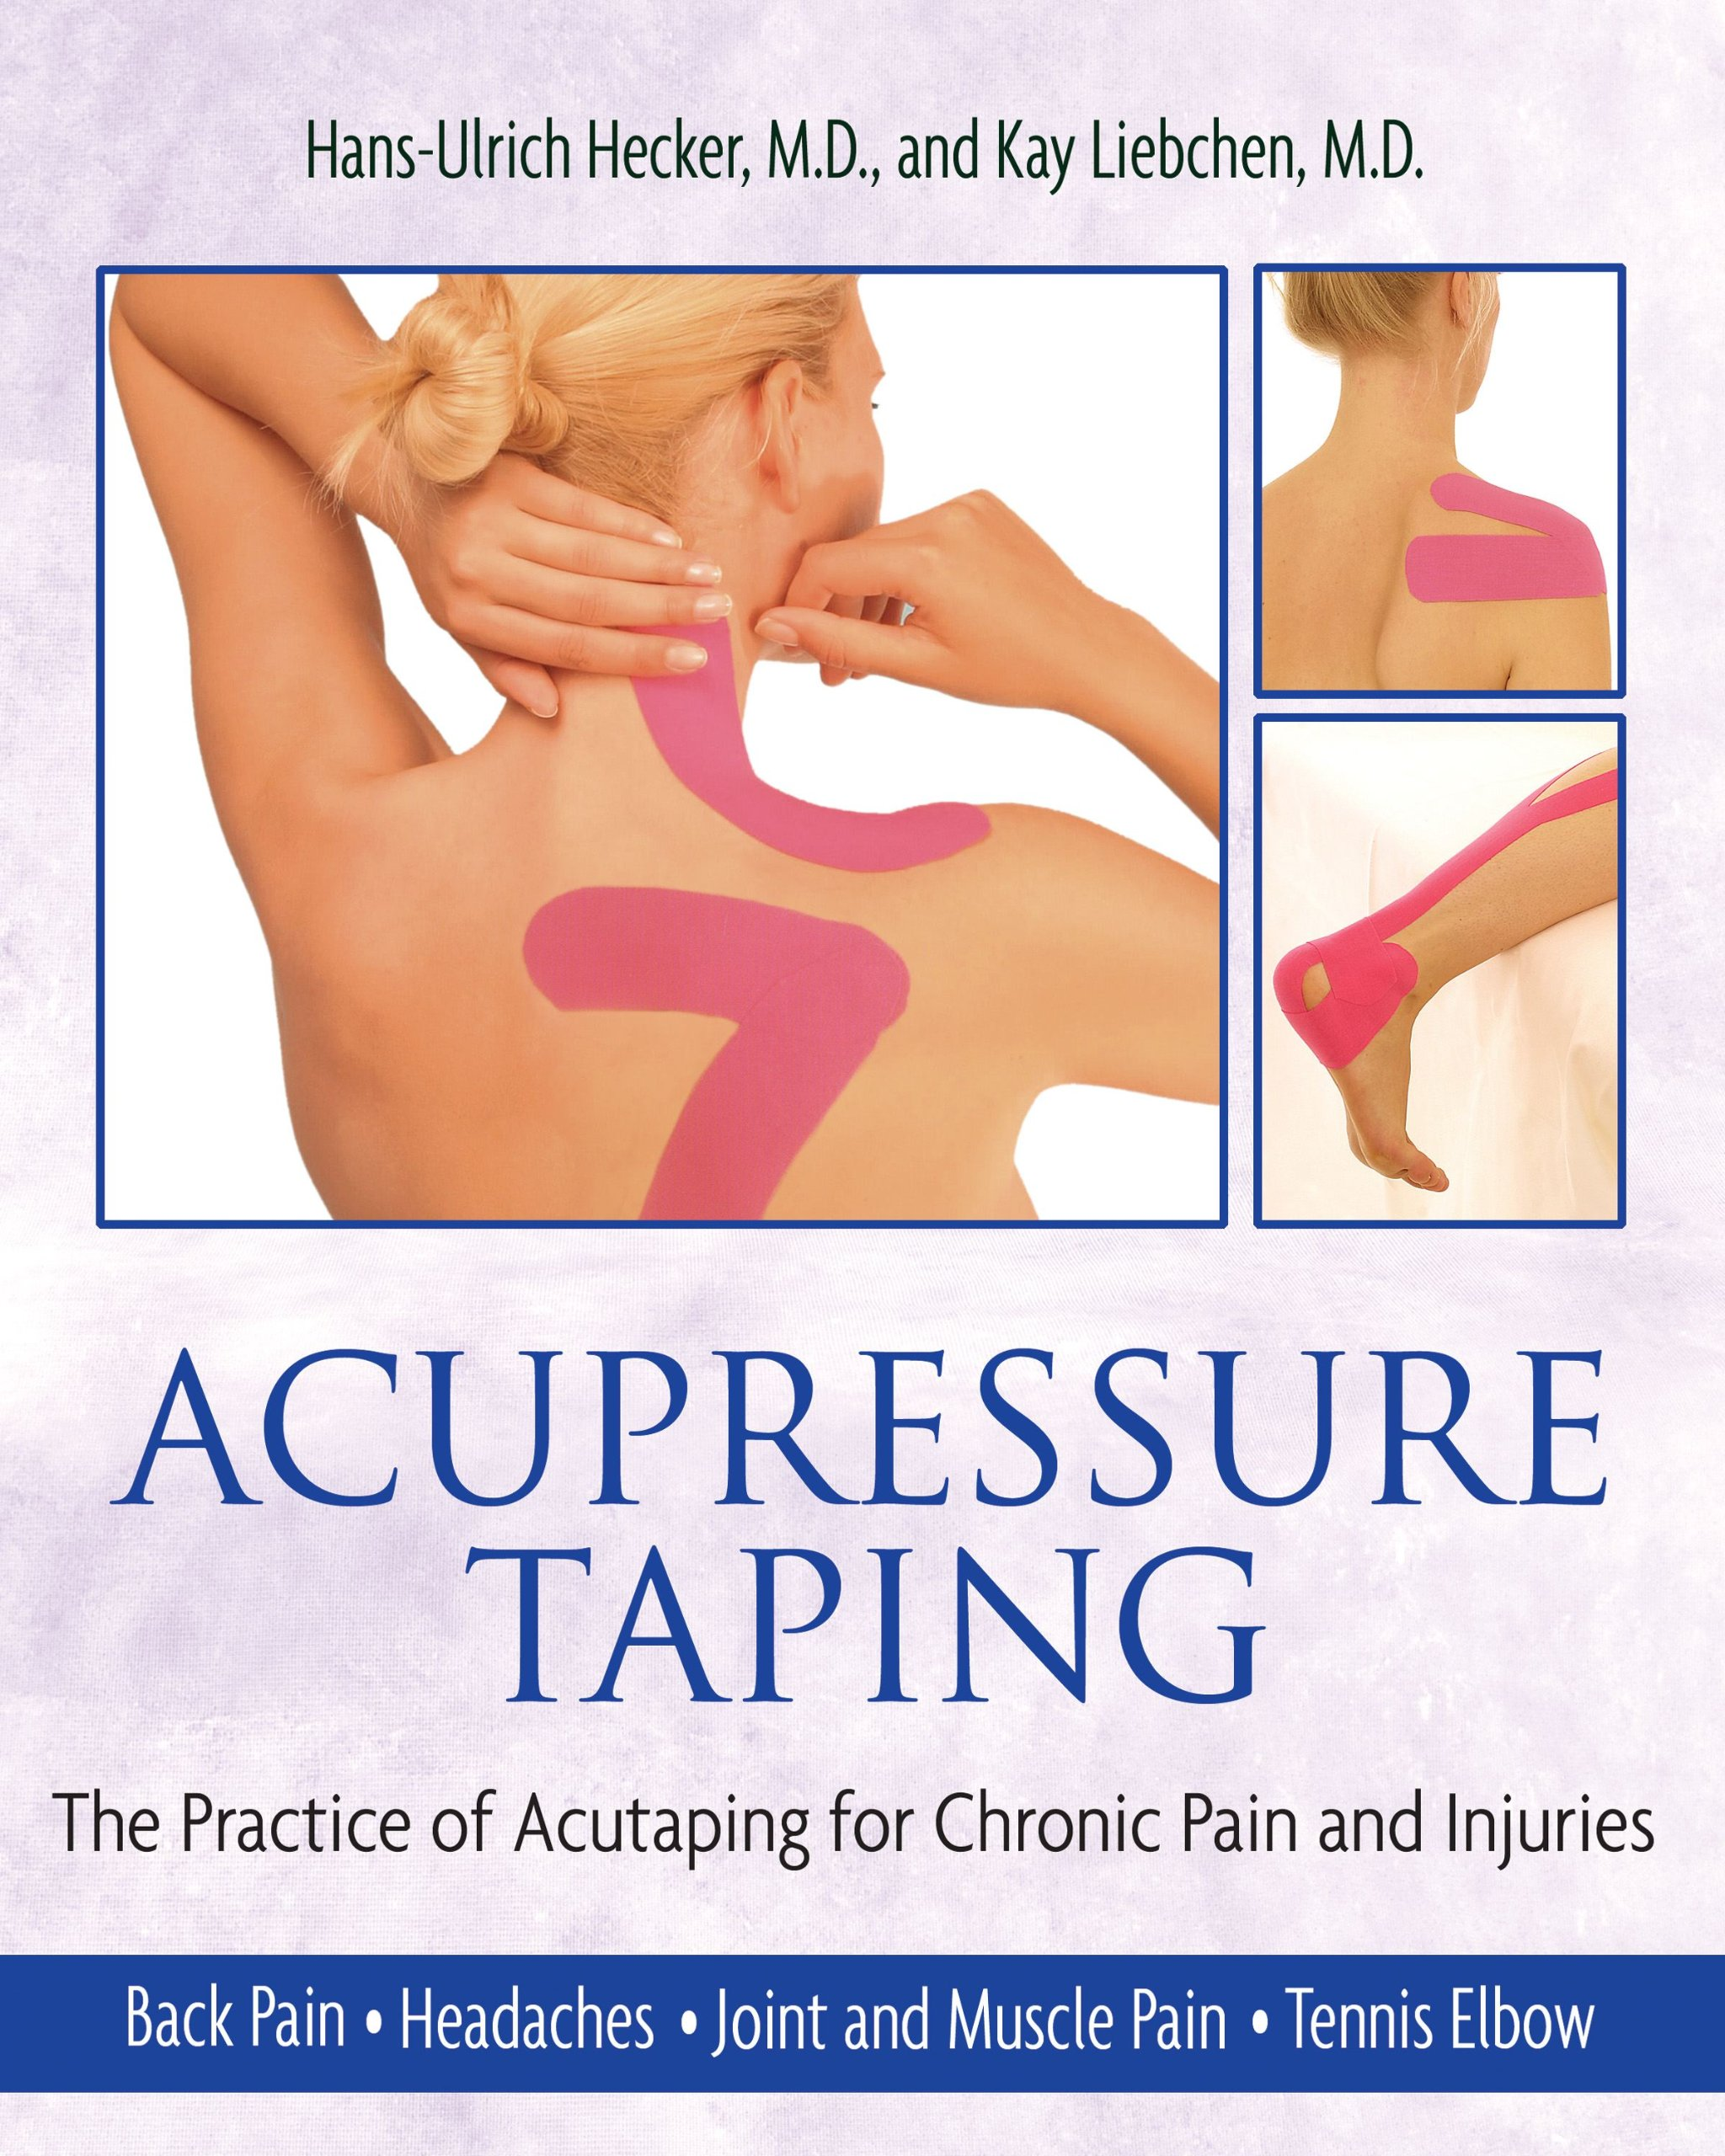 Acupressure Taping Practice Acutaping Injuries product image